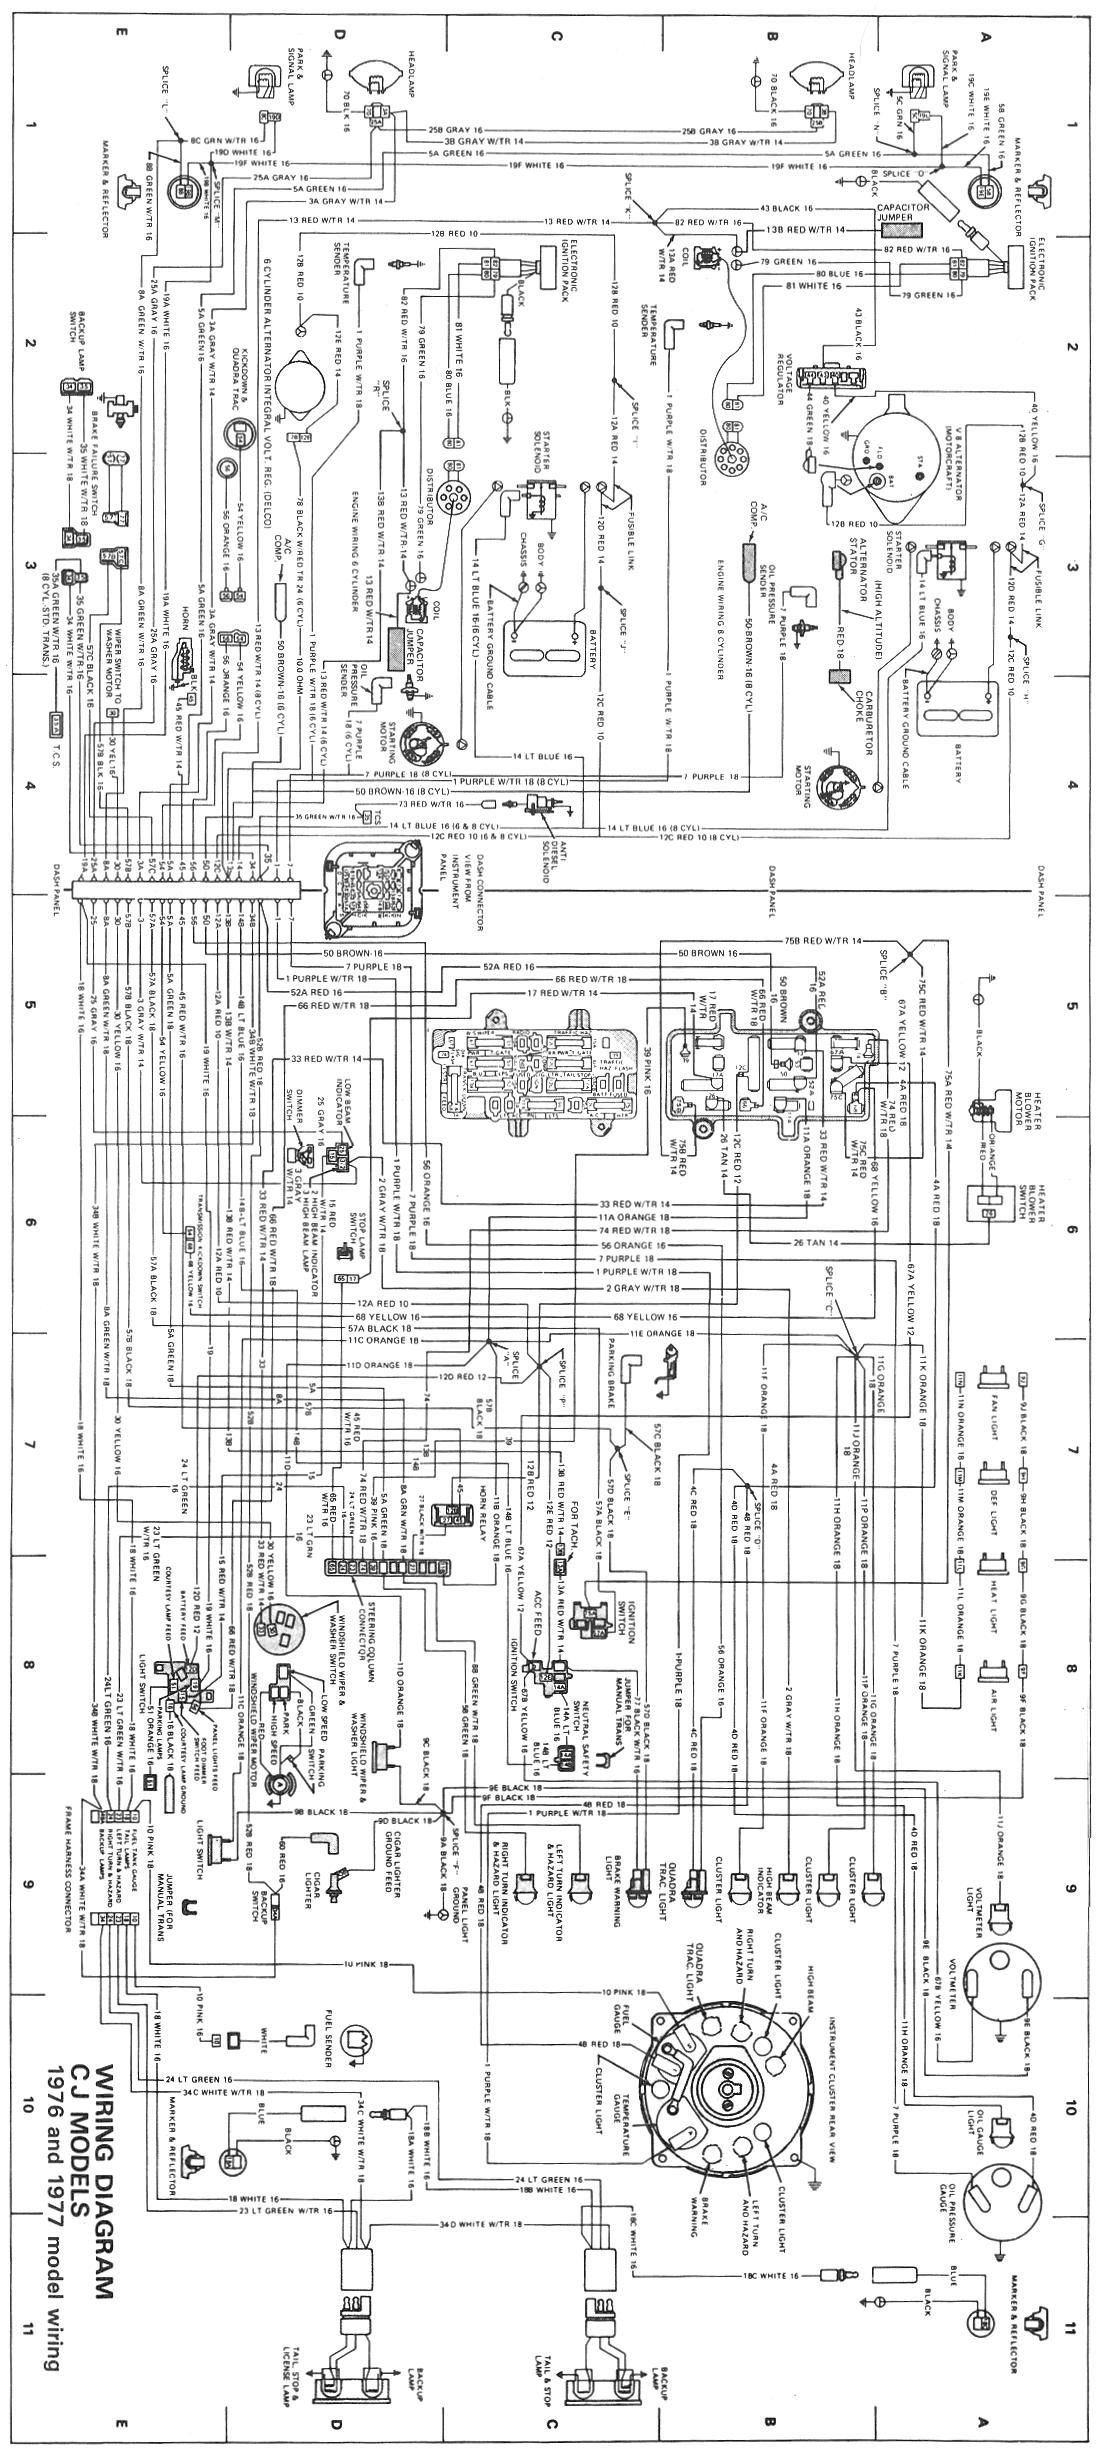 8d25ded6e3673519e155875e09844e5e cj wiring diagram 1976 1977 jpg 1,100�2,459 pixels 1976 jeep cj5 Painless Wiring Harness Diagram at reclaimingppi.co